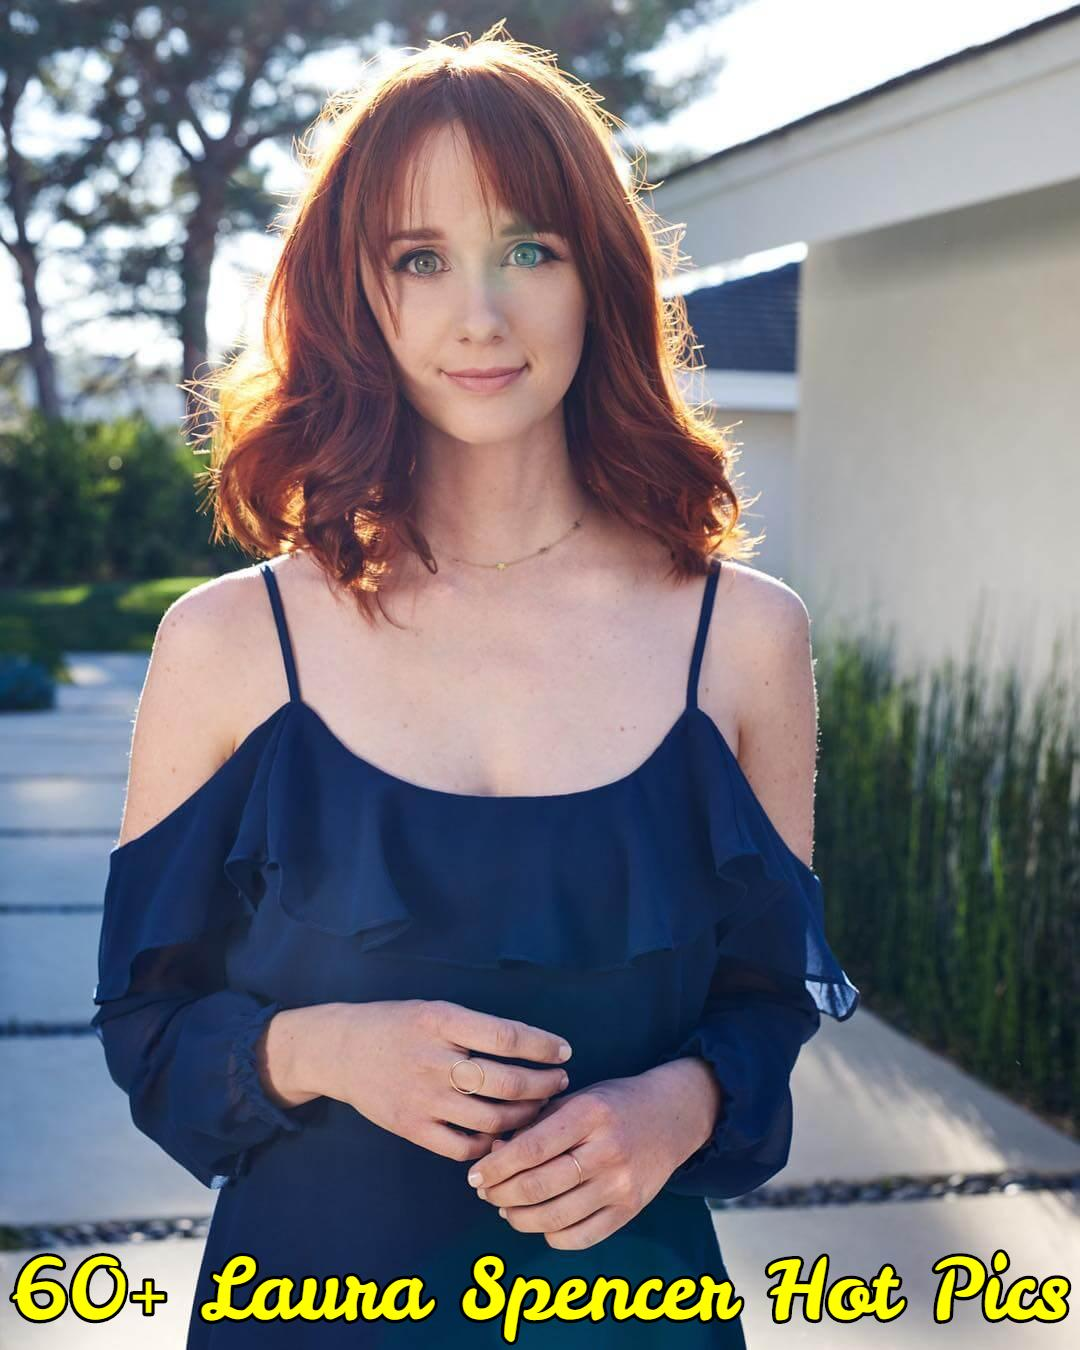 laura spencer hot pics